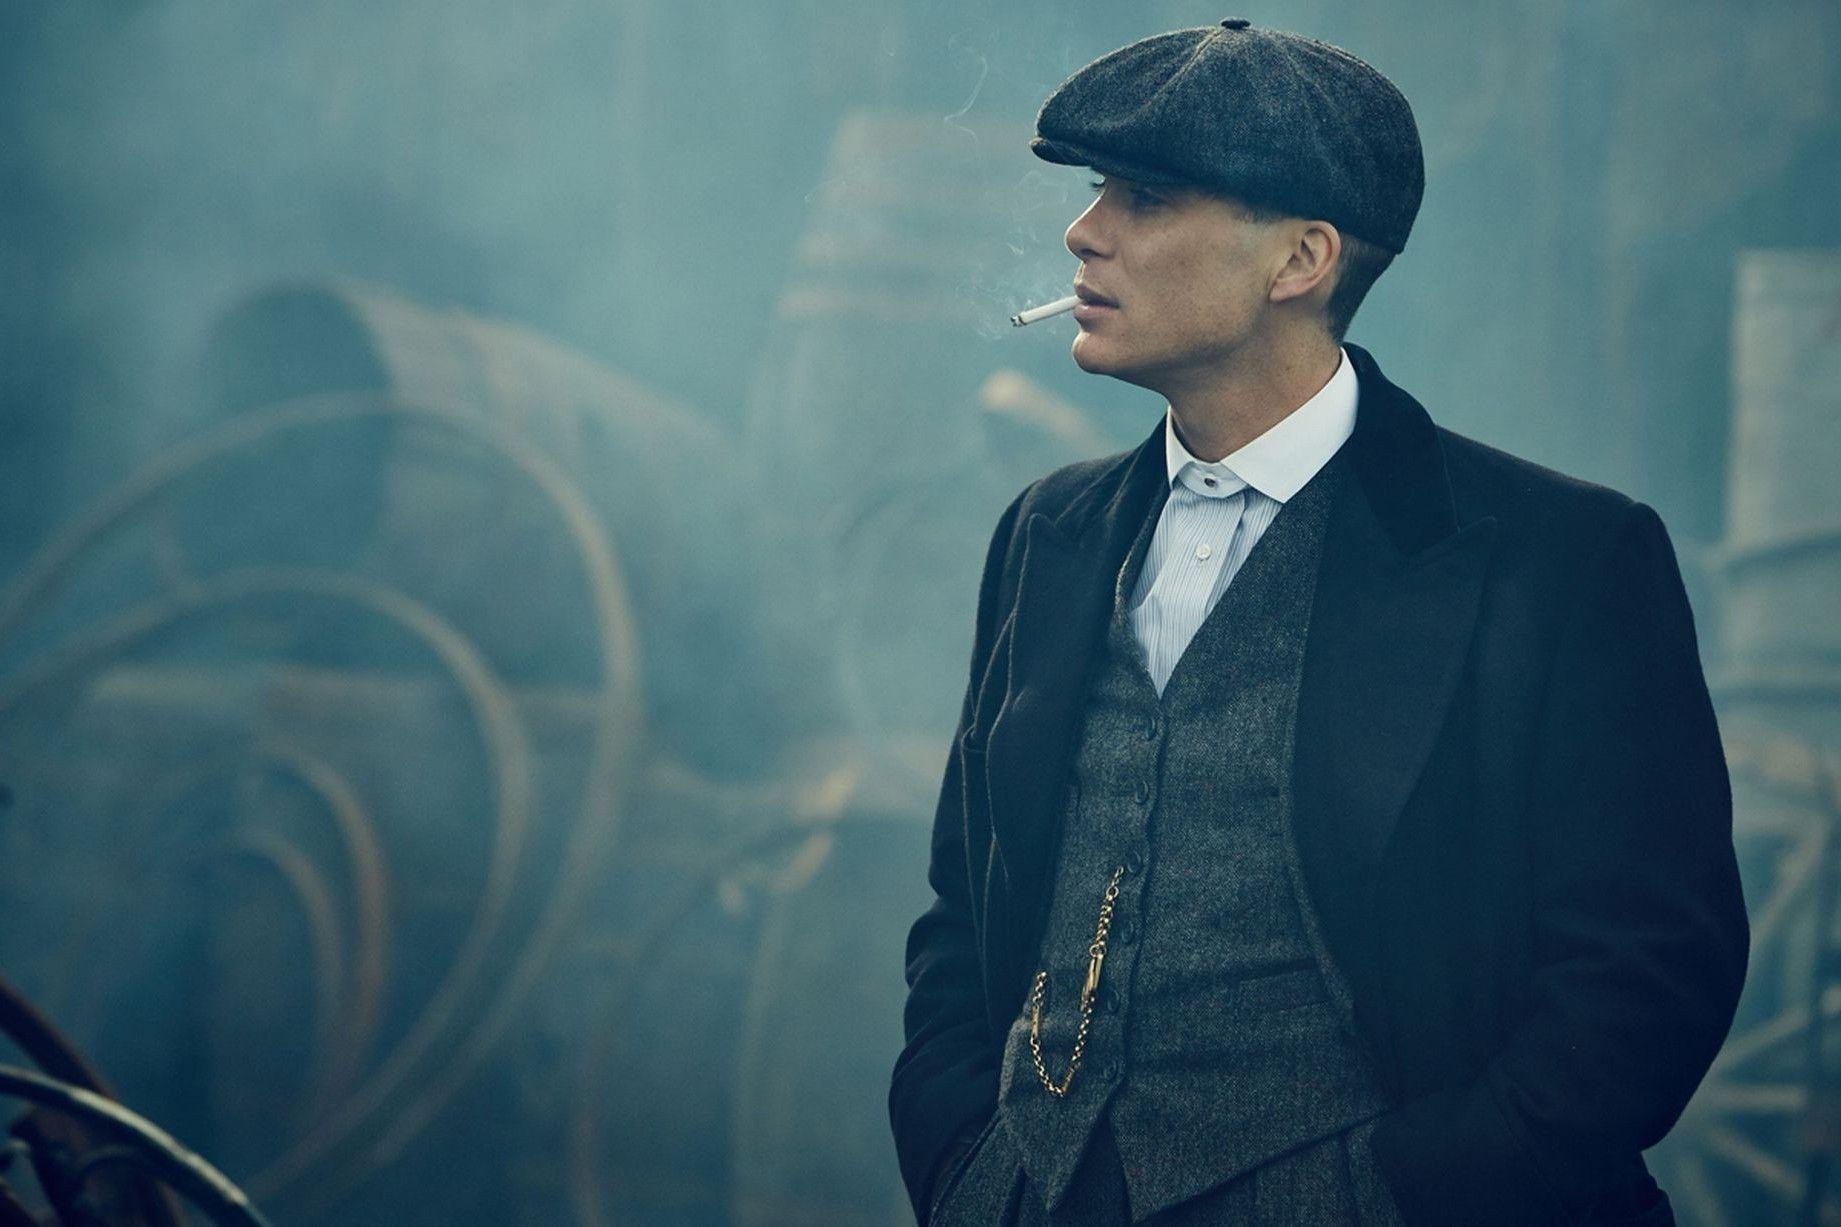 Peaky Blinders Iphone Wallpaper Peaky Blinders Wallpapers Wallpaper Cave